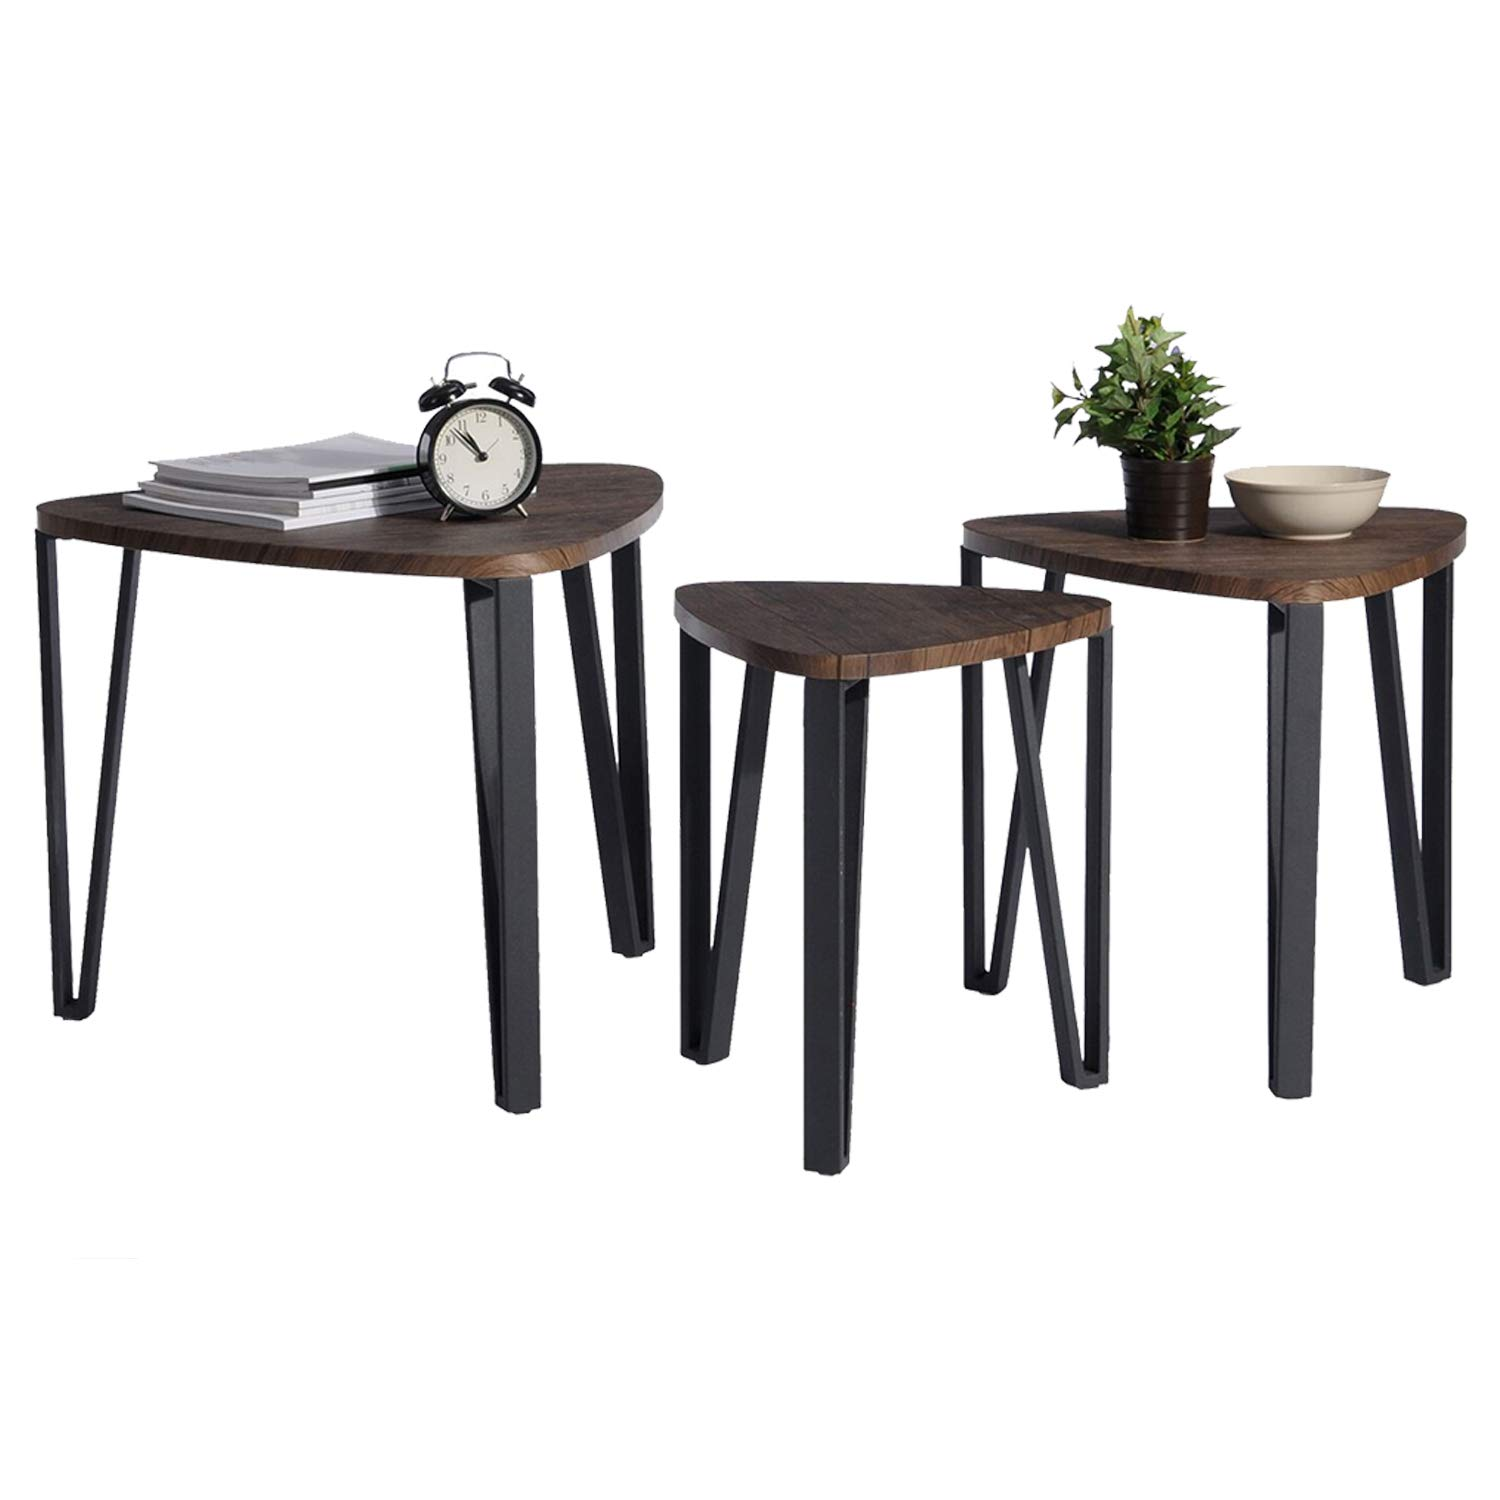 coavas vintage nesting coffee table set for living room round accent industrial stacking end side leisure wood night stand telephone home office receving pier one outdoor